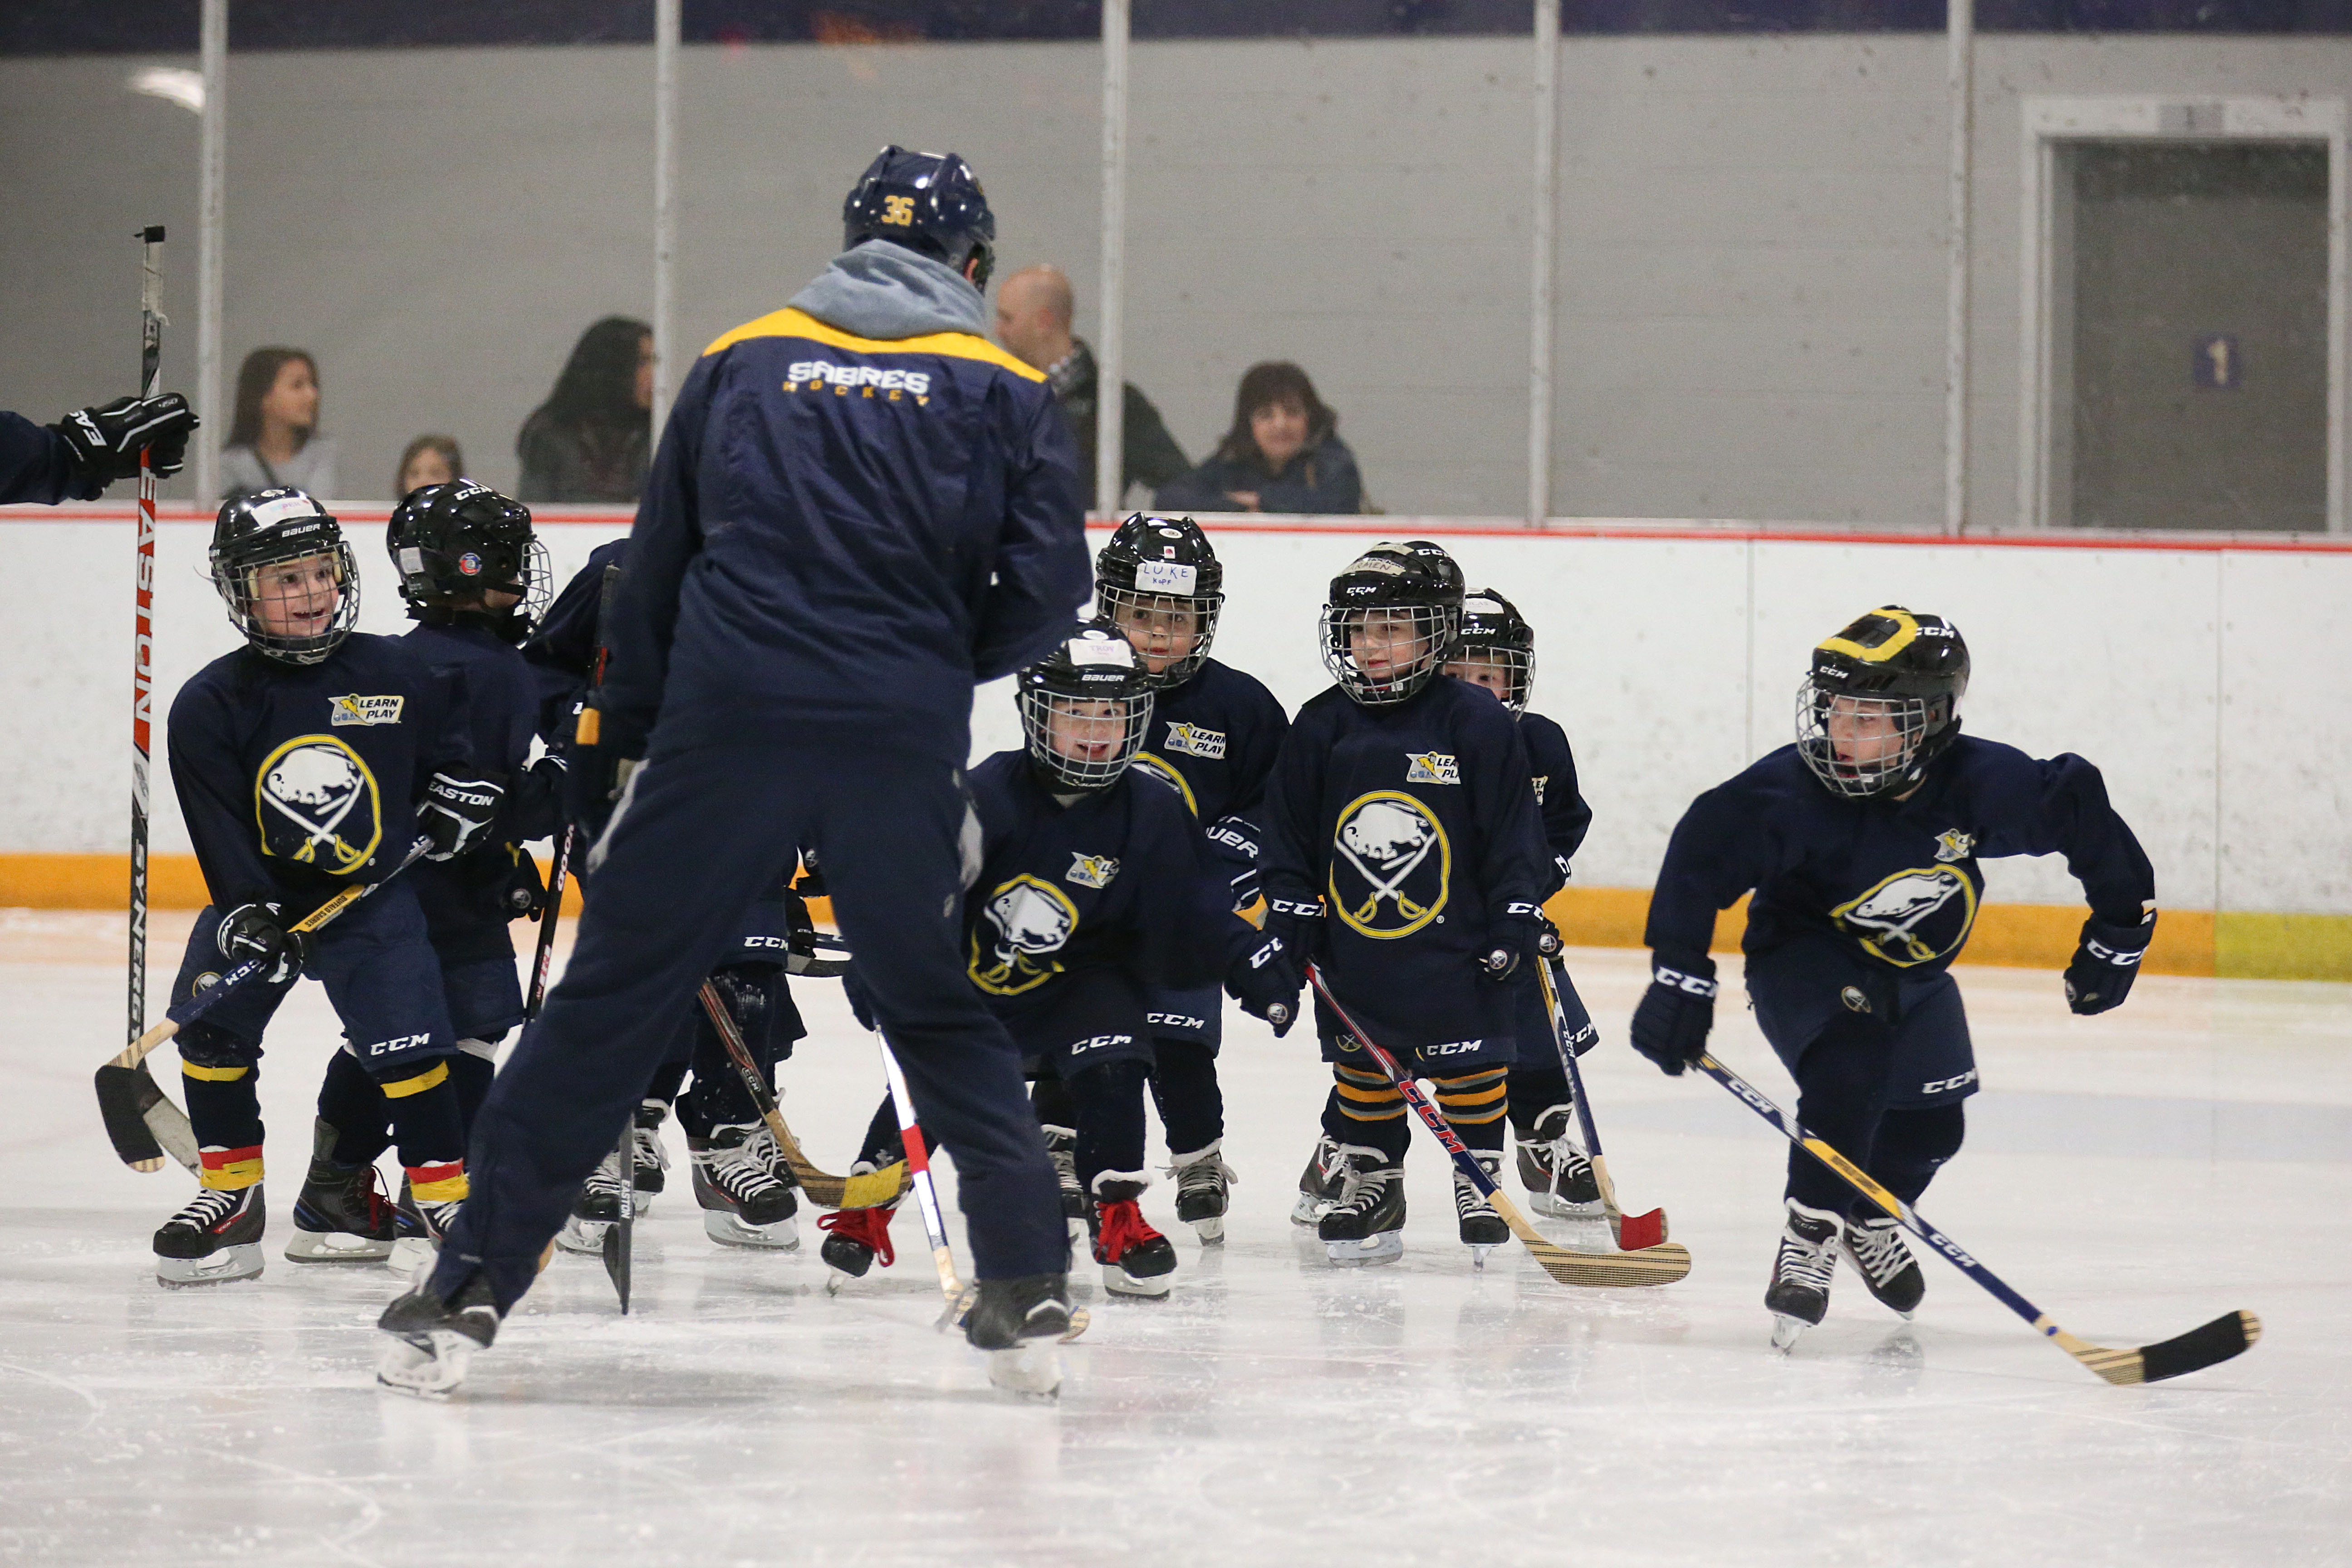 """The Niagara Junior Purple Eagles' youth hockey organization has partnered with the Buffalo Sabres and the NHL Players' Association in a """"Learn to Play"""" clinic. (Sharon Cantillon/Buffalo News)"""